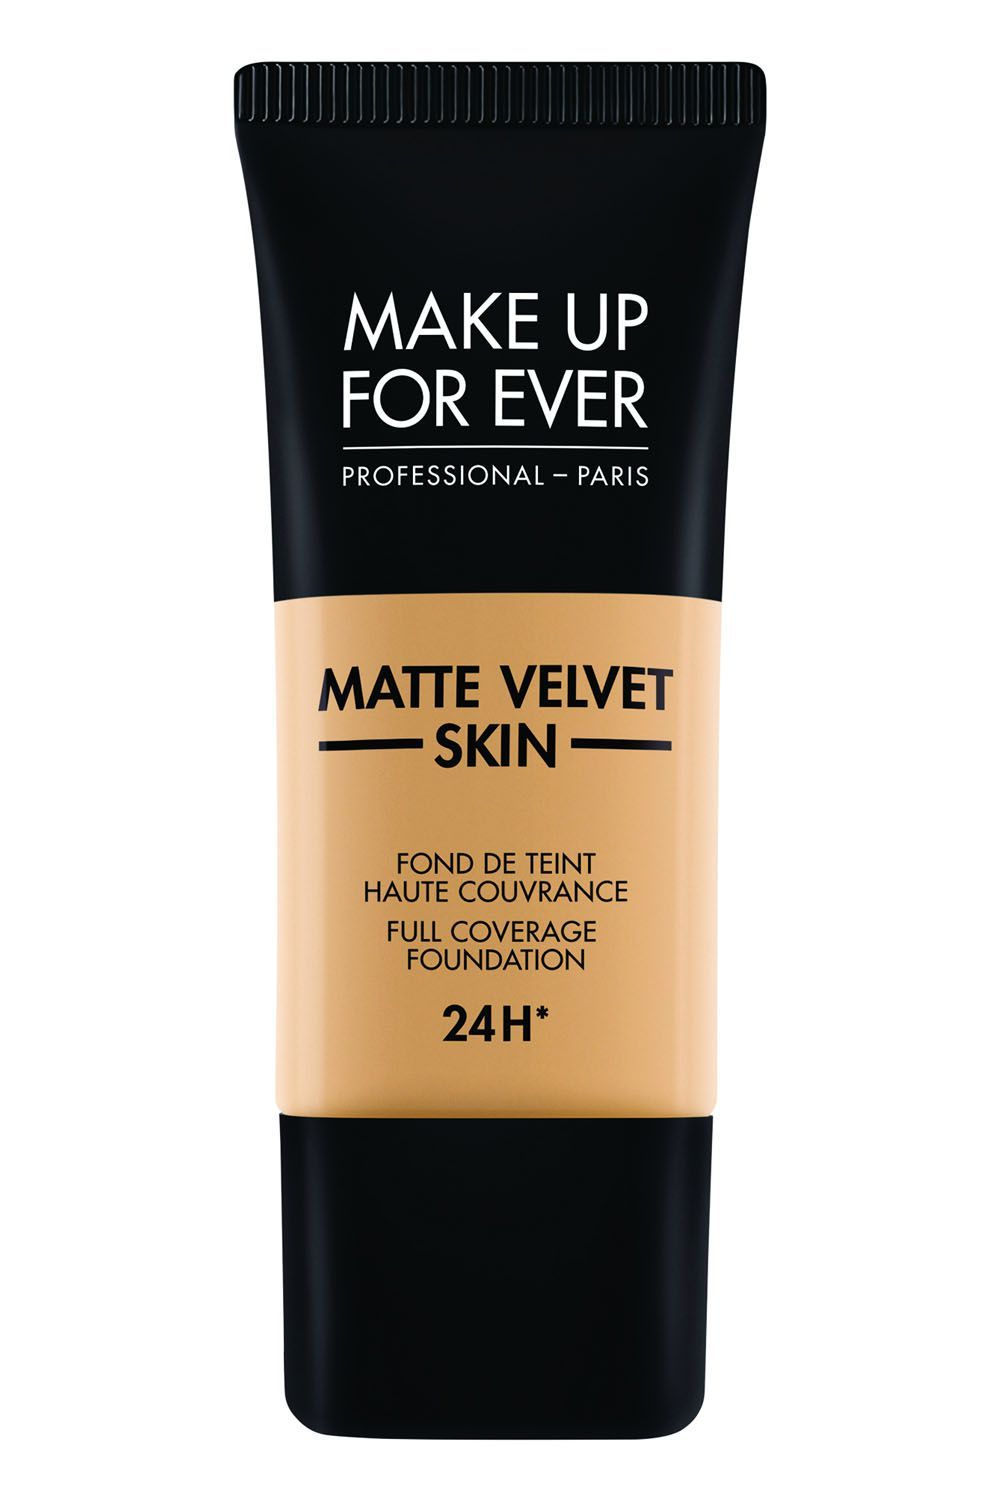 17 Best Foundations For Oily Skin That